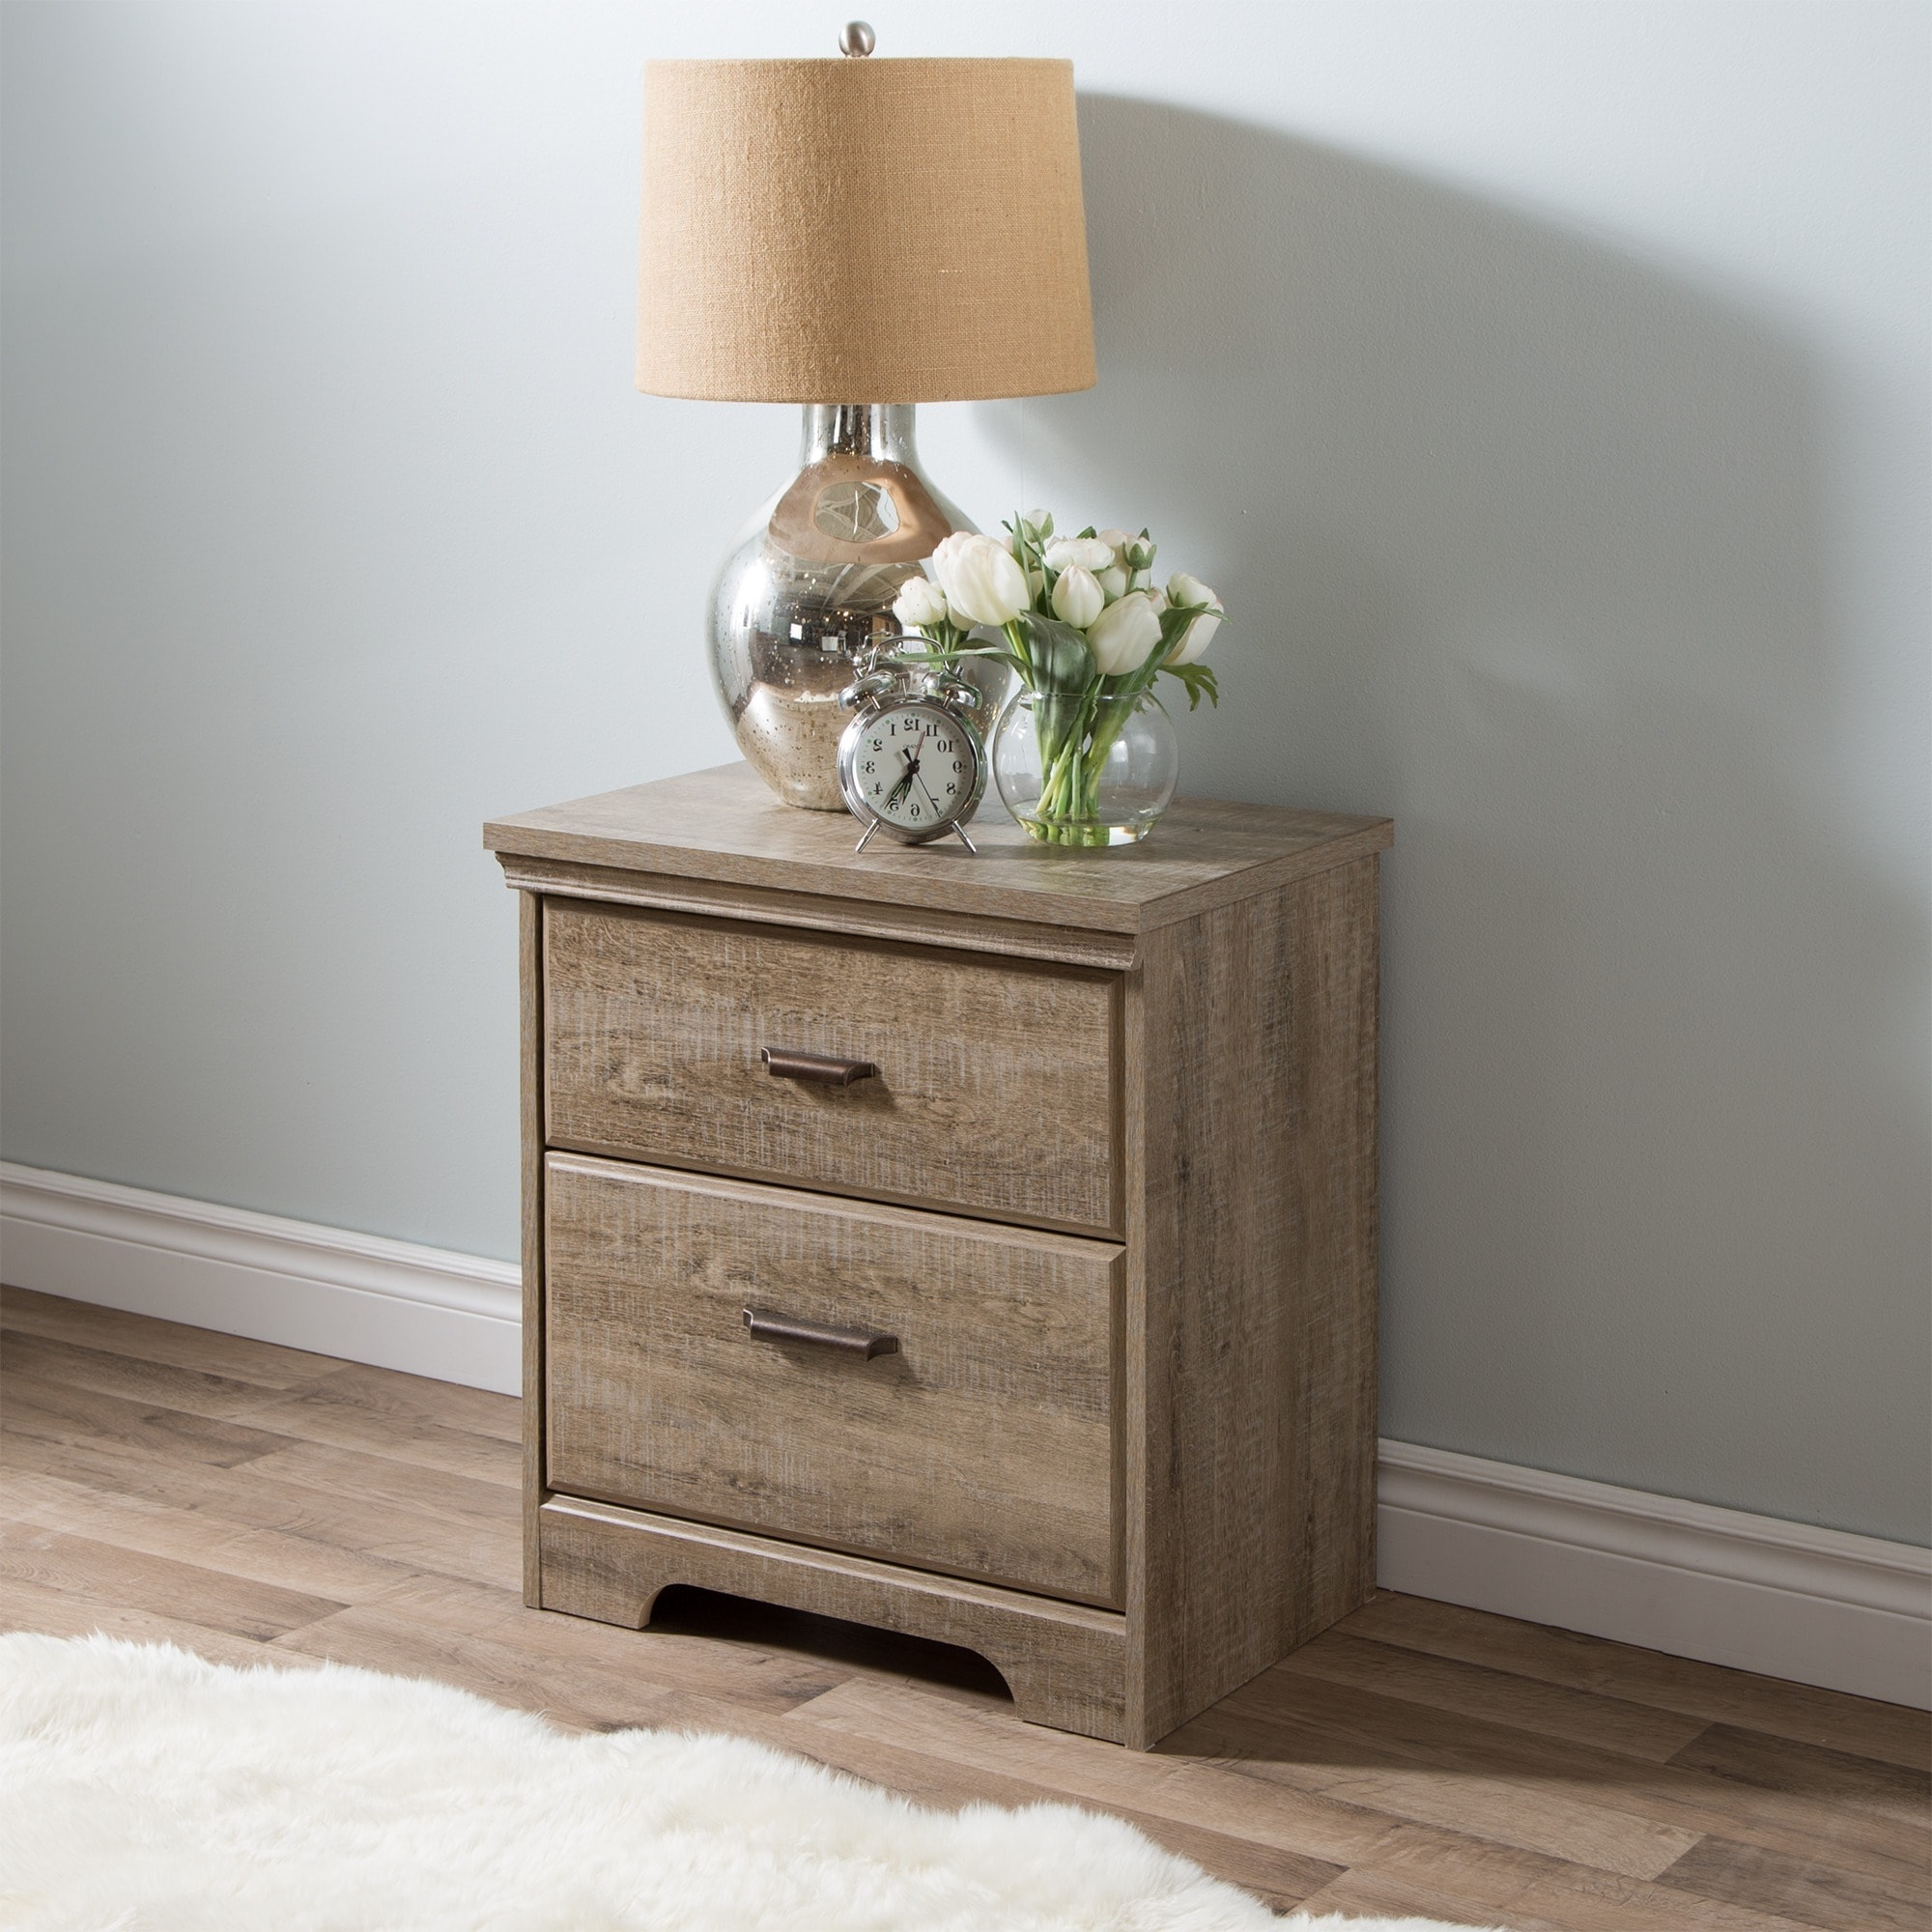 South-Shore-Versa-Nightstand thumbnail 7